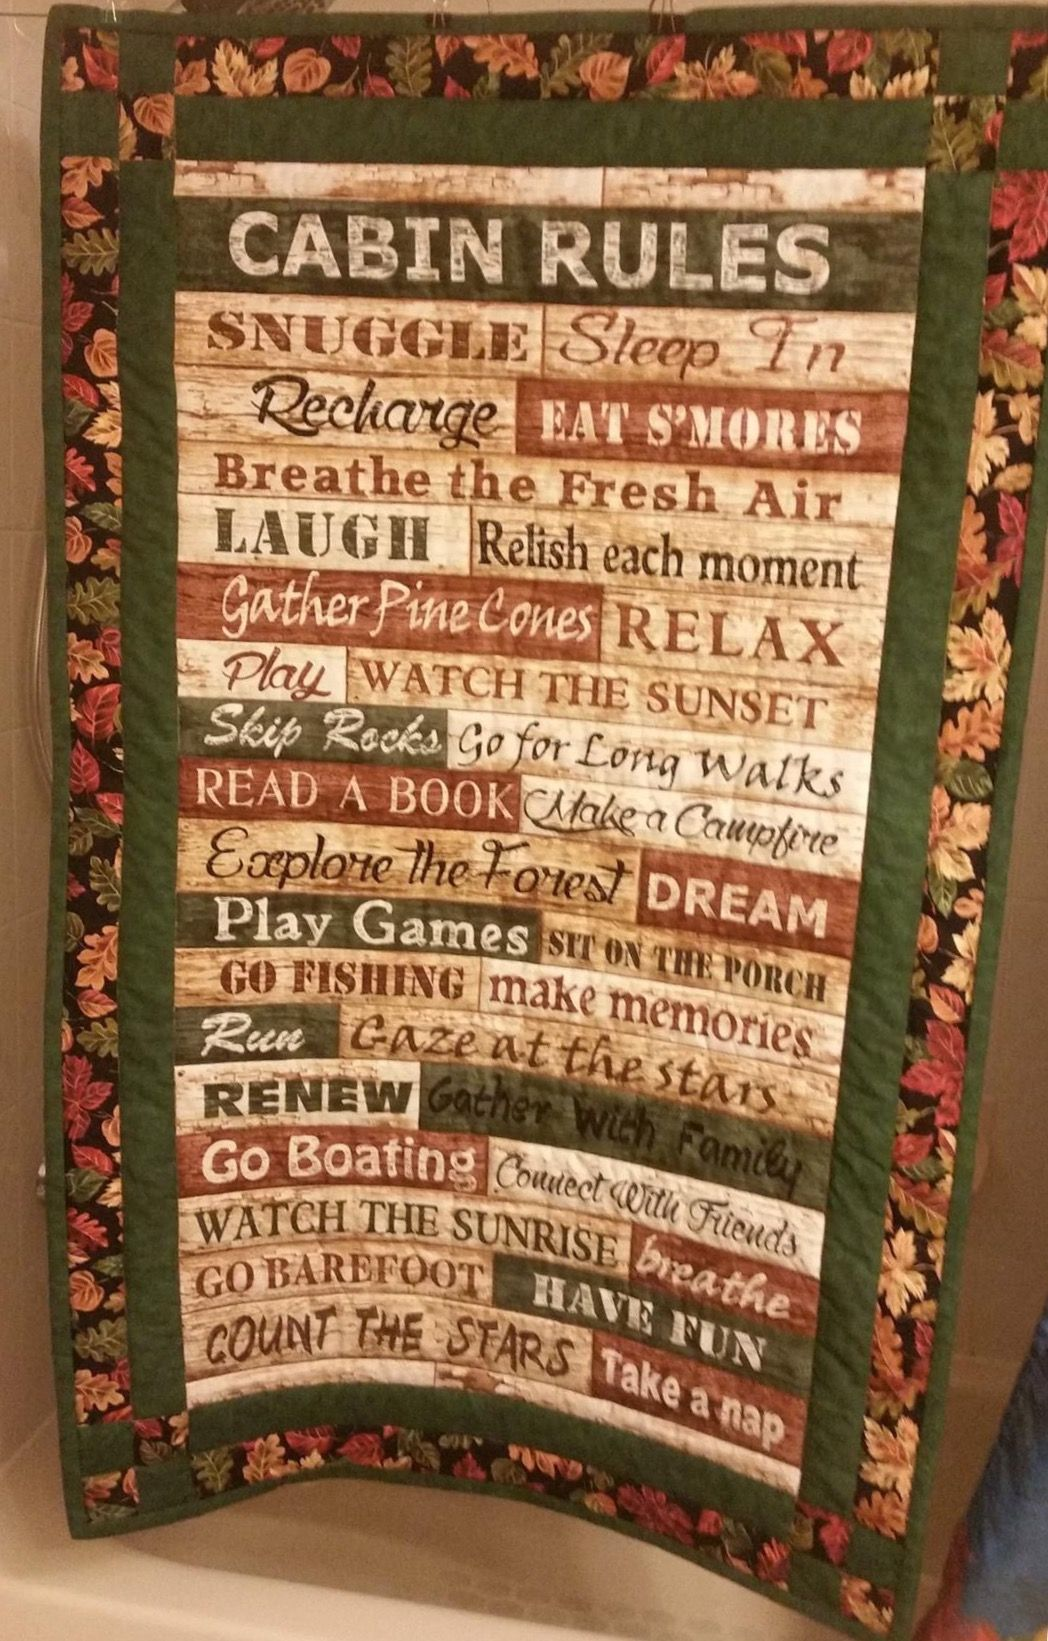 Pin by Dana R on Quilting (With images) Cabin rules